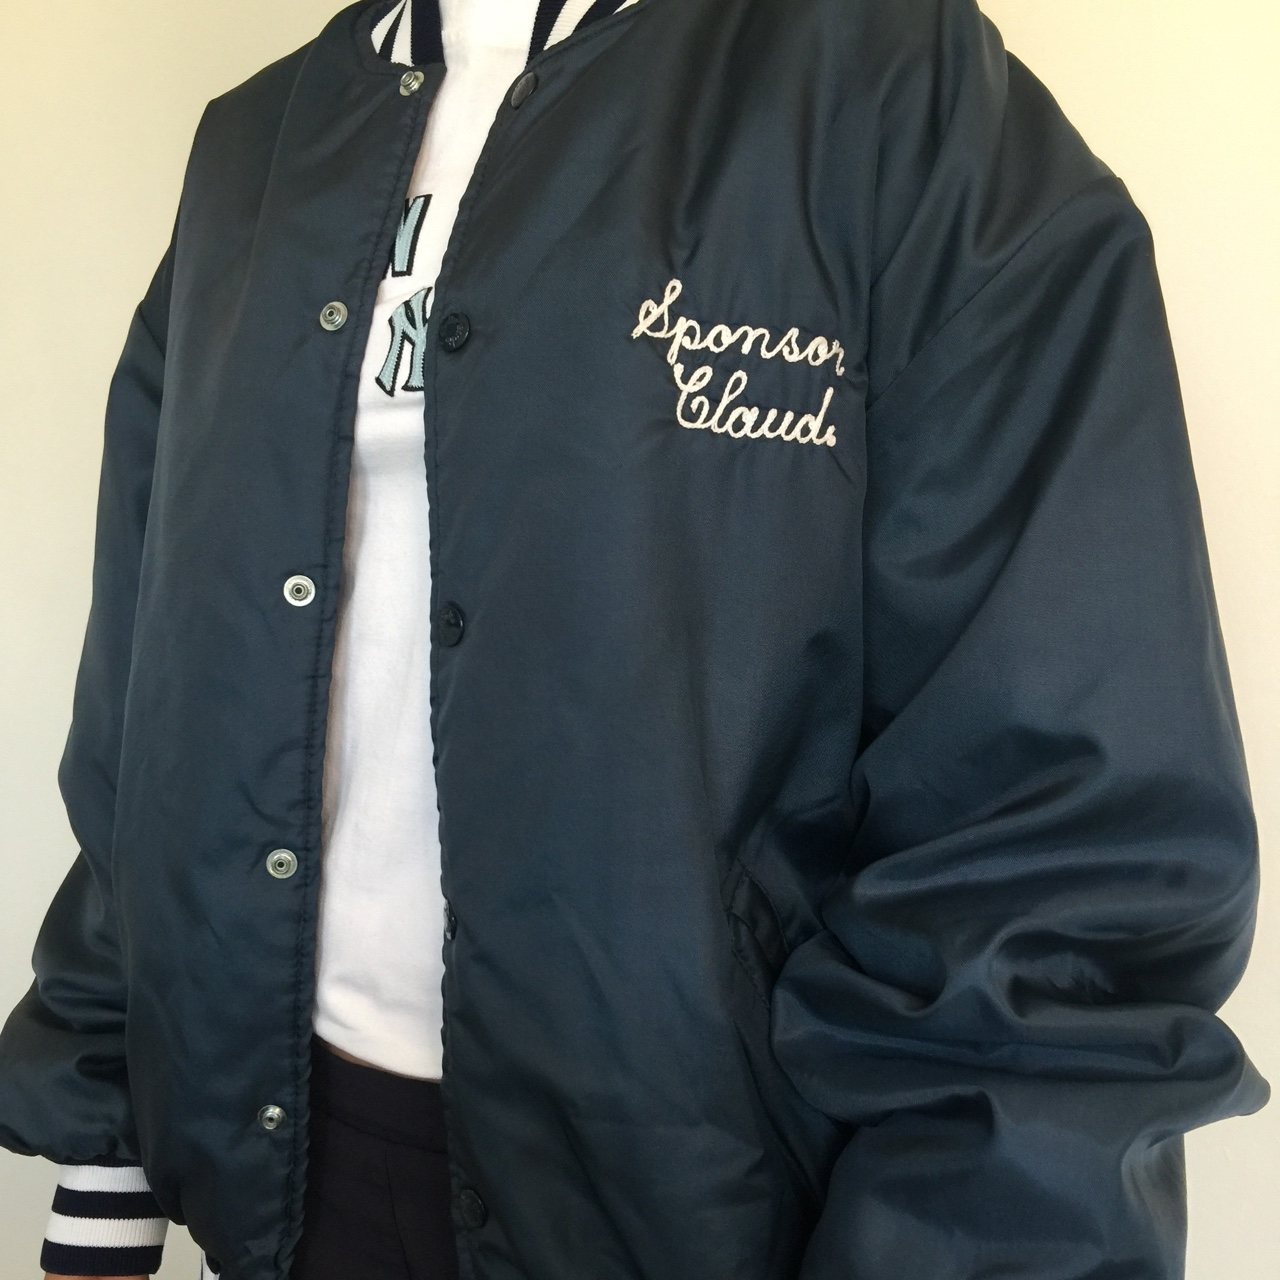 finest selection 3c792 36103 Dallas cowboys Baseball jacket warm and trendy ... - Depop